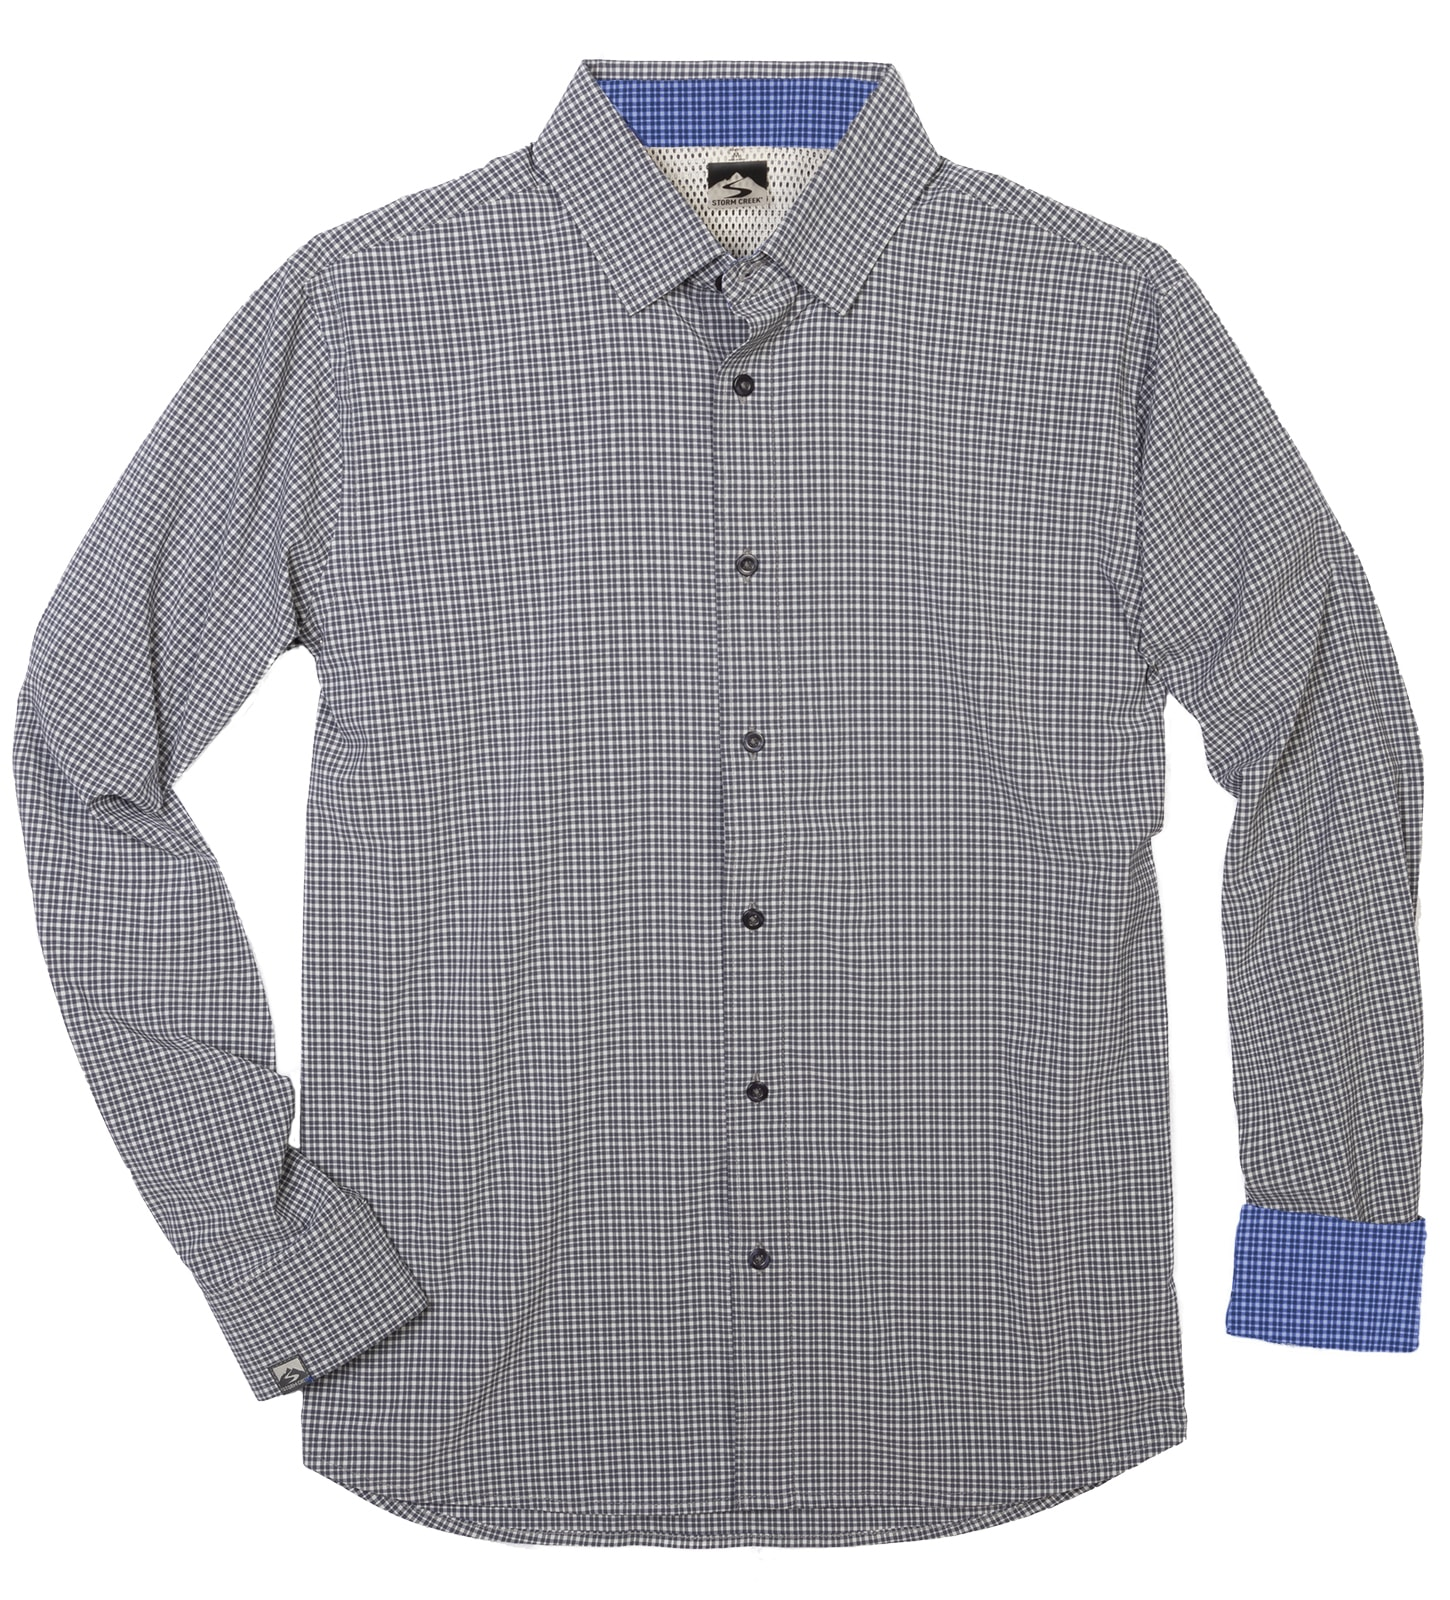 Storm Creek 2560 - Men's Tonal Check 4-Way Stretch Eco-...